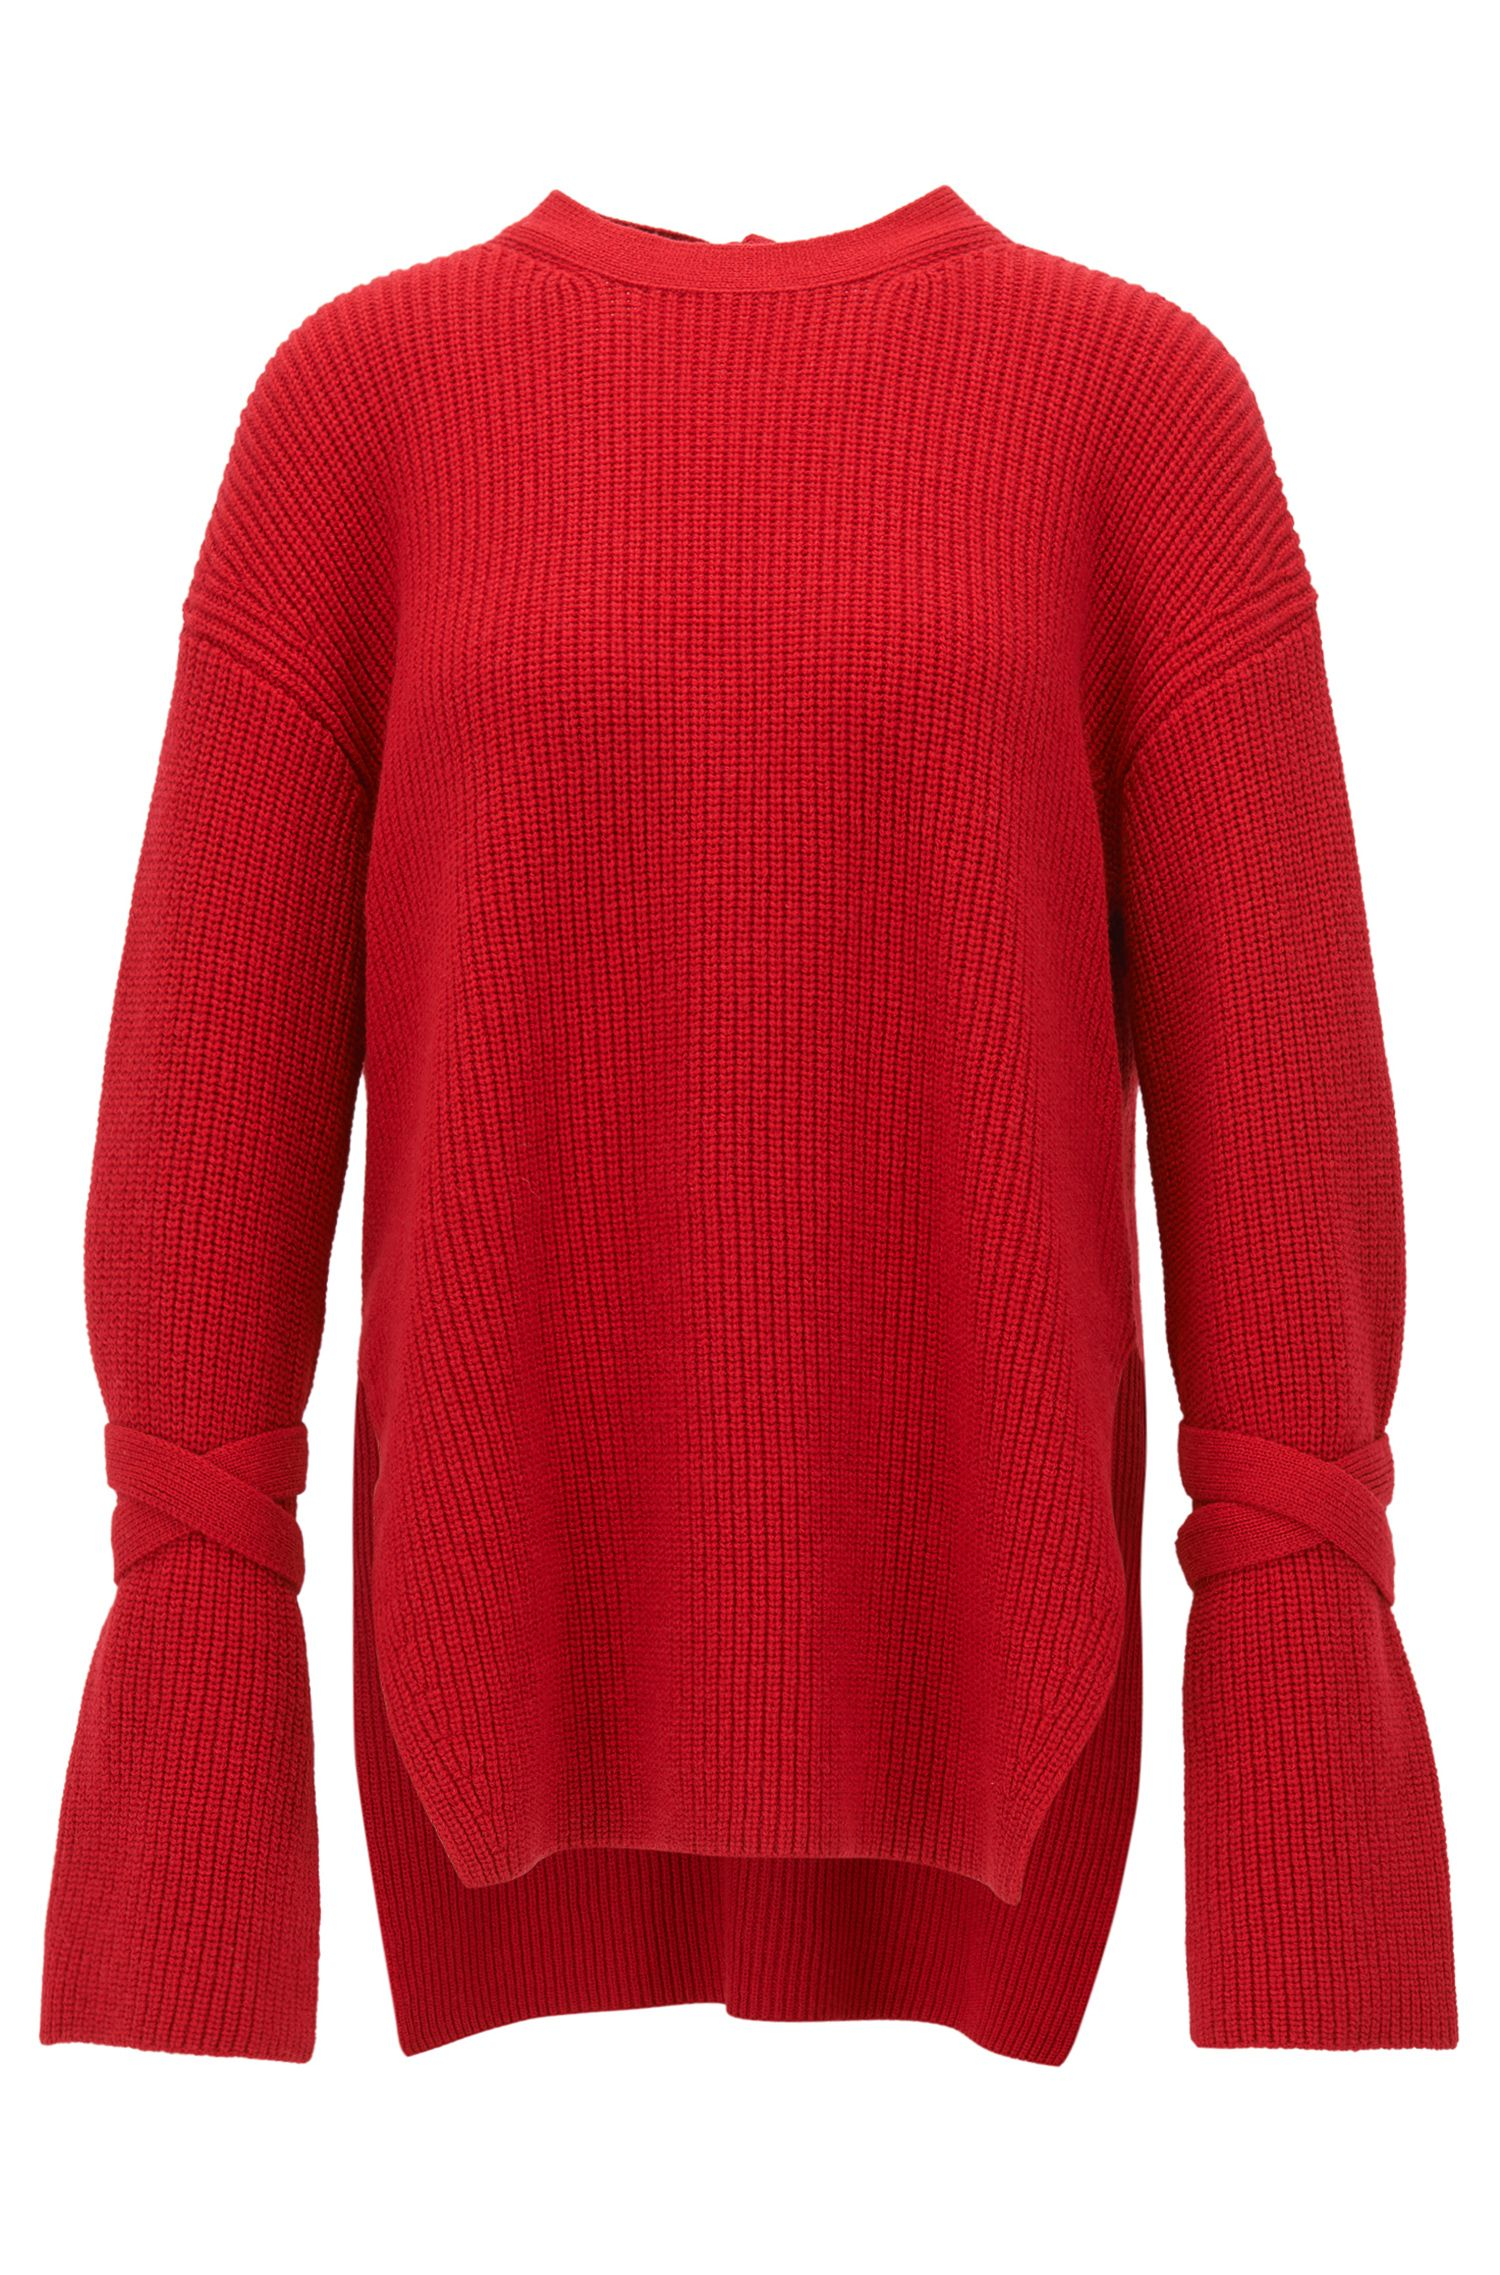 Relaxed-fit wool-blend sweater with feature cuffs